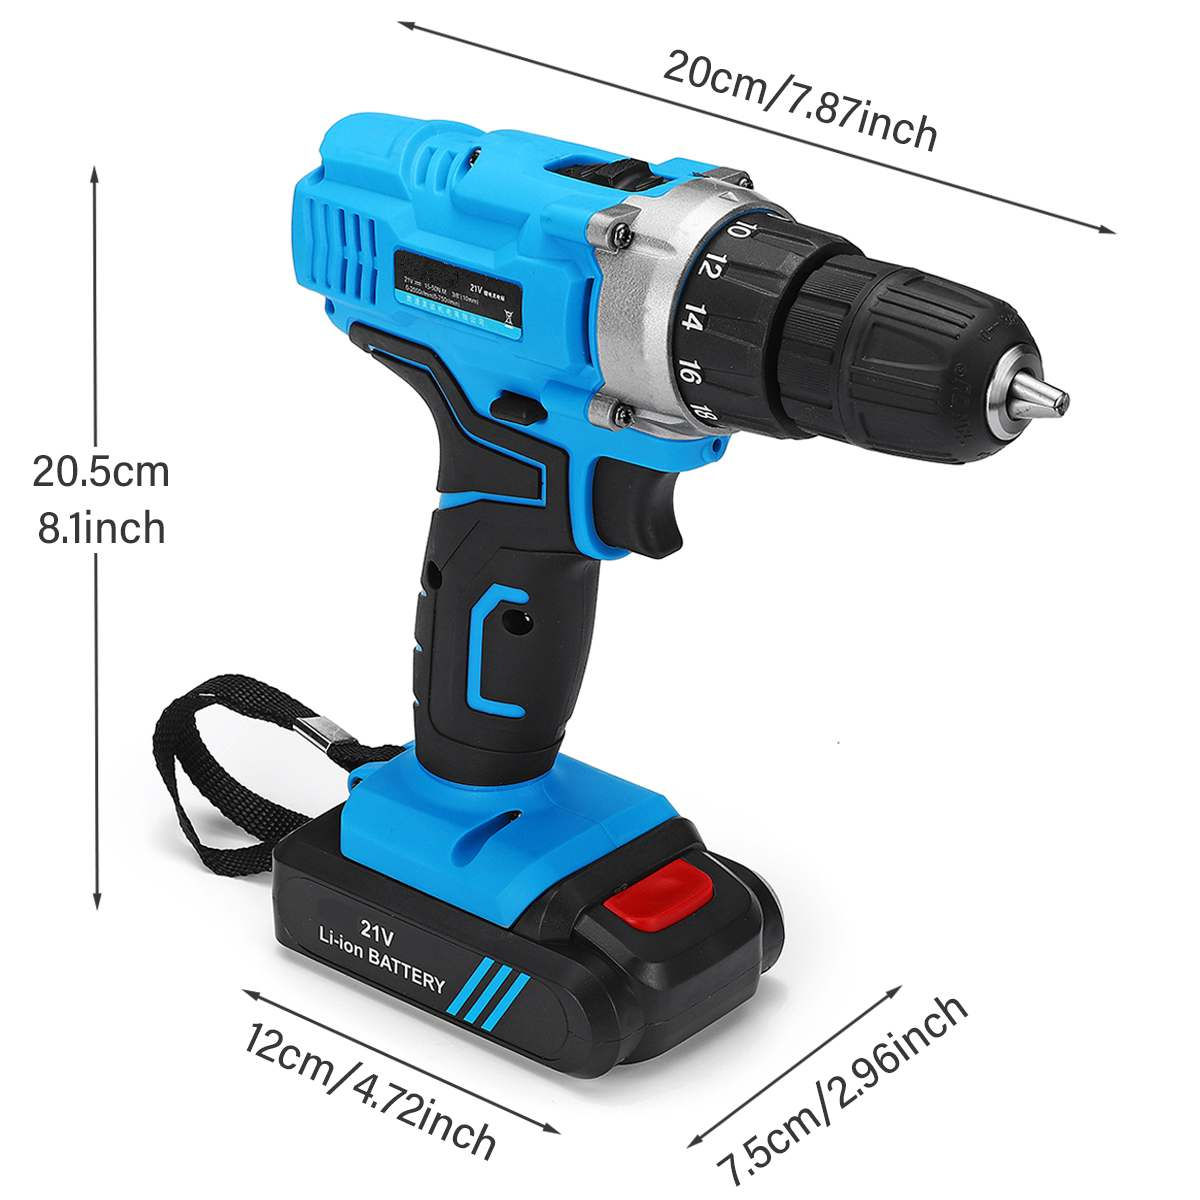 21V 6500mAh 2-Speed 2200RPM Electric Screwdriver Kit 2 Li-Ion Batteries Rechargeable LED Electric Cordless Drill Power Tool 10mm